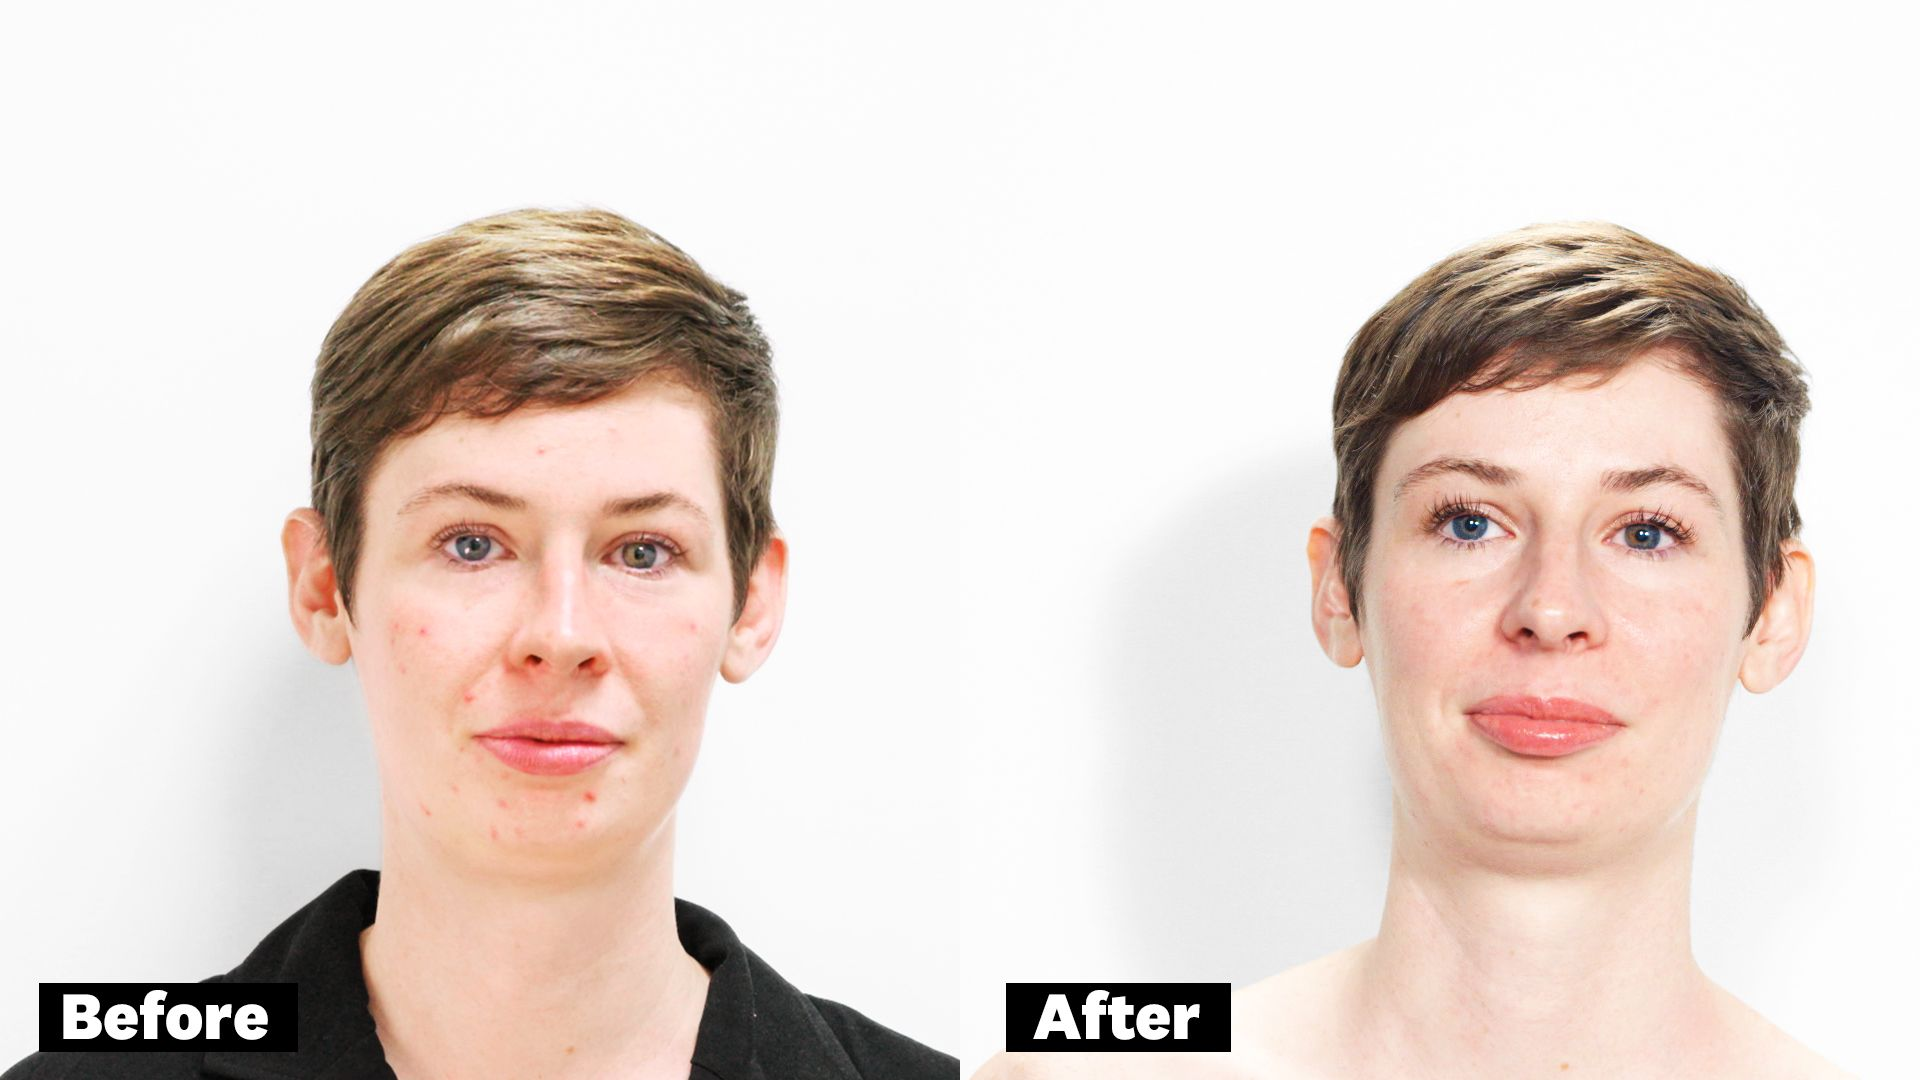 Glycolic Acid Peel for Acne - Here's What Happened When I